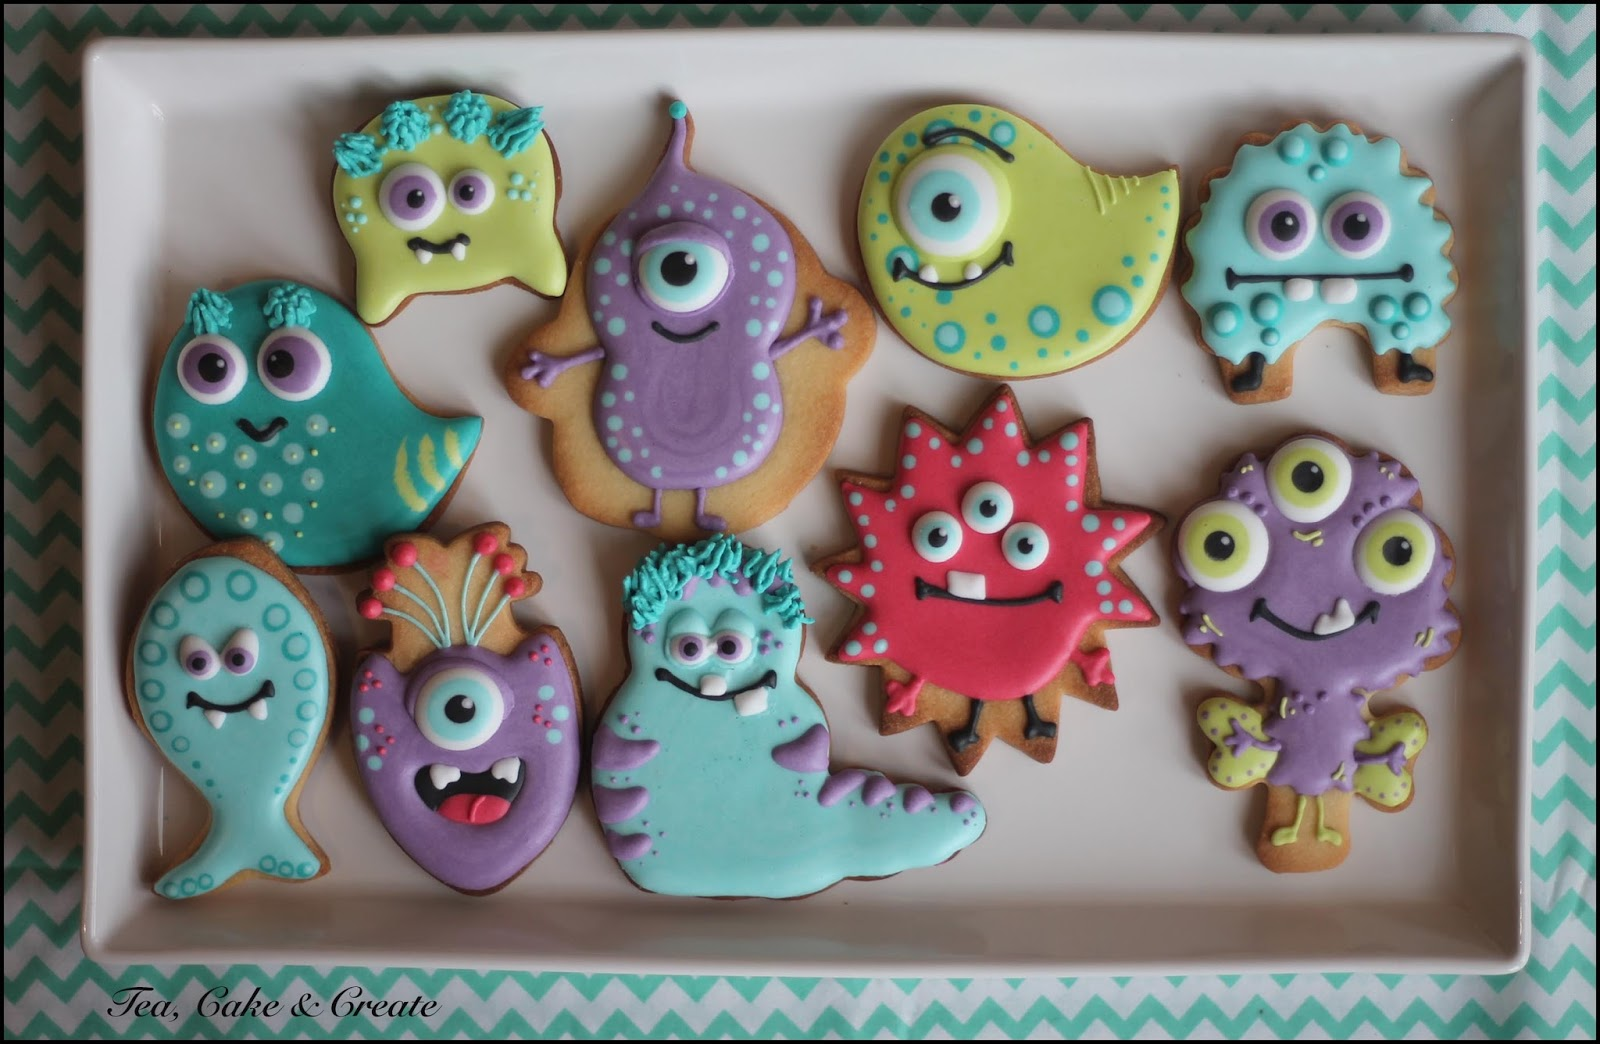 Tea, Cake & Create: Monsters! (Monster Decorated Cookies)